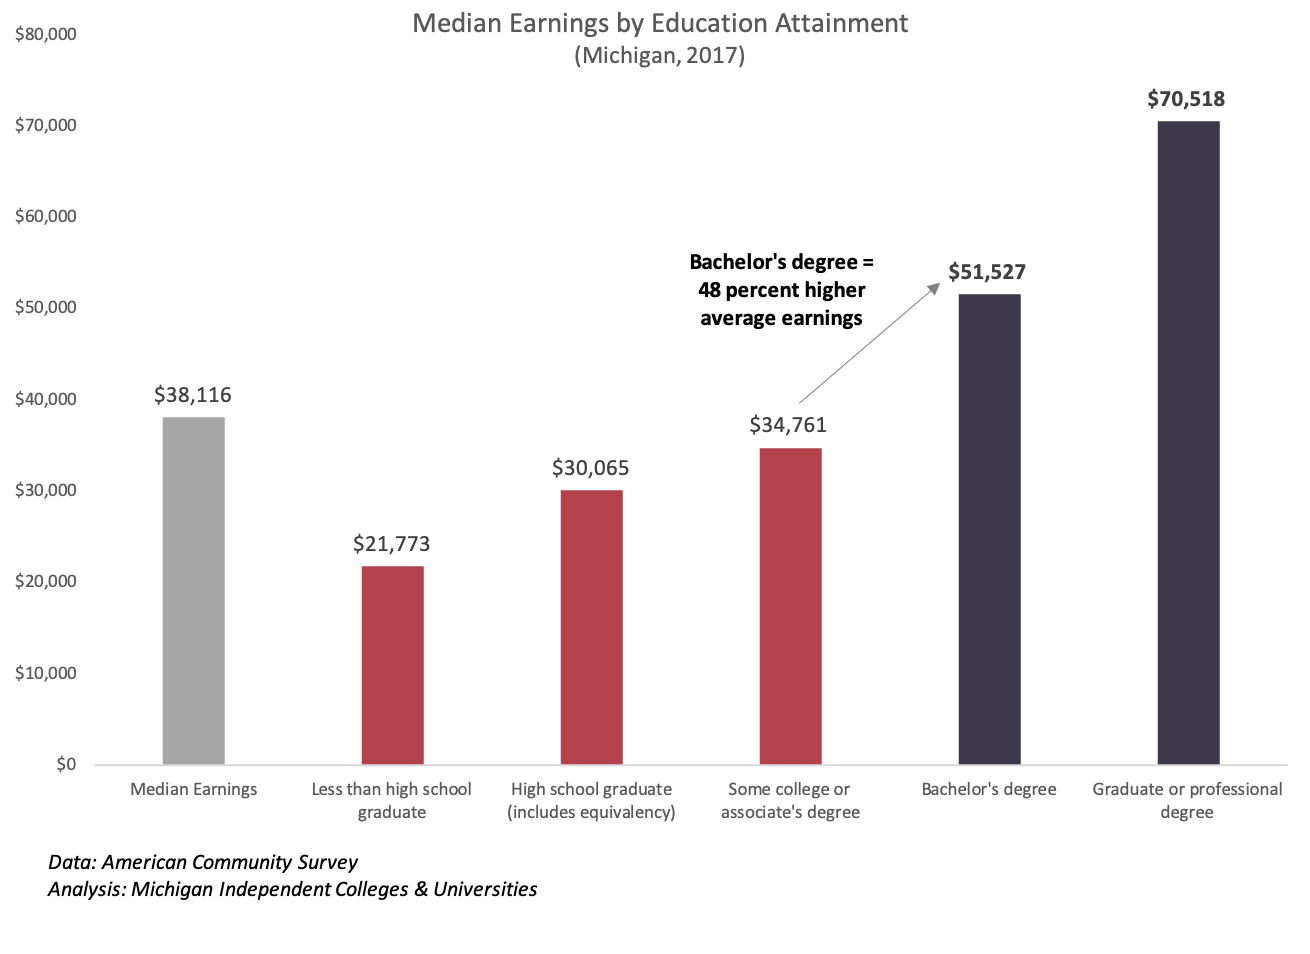 med earnings by ed attainment.png